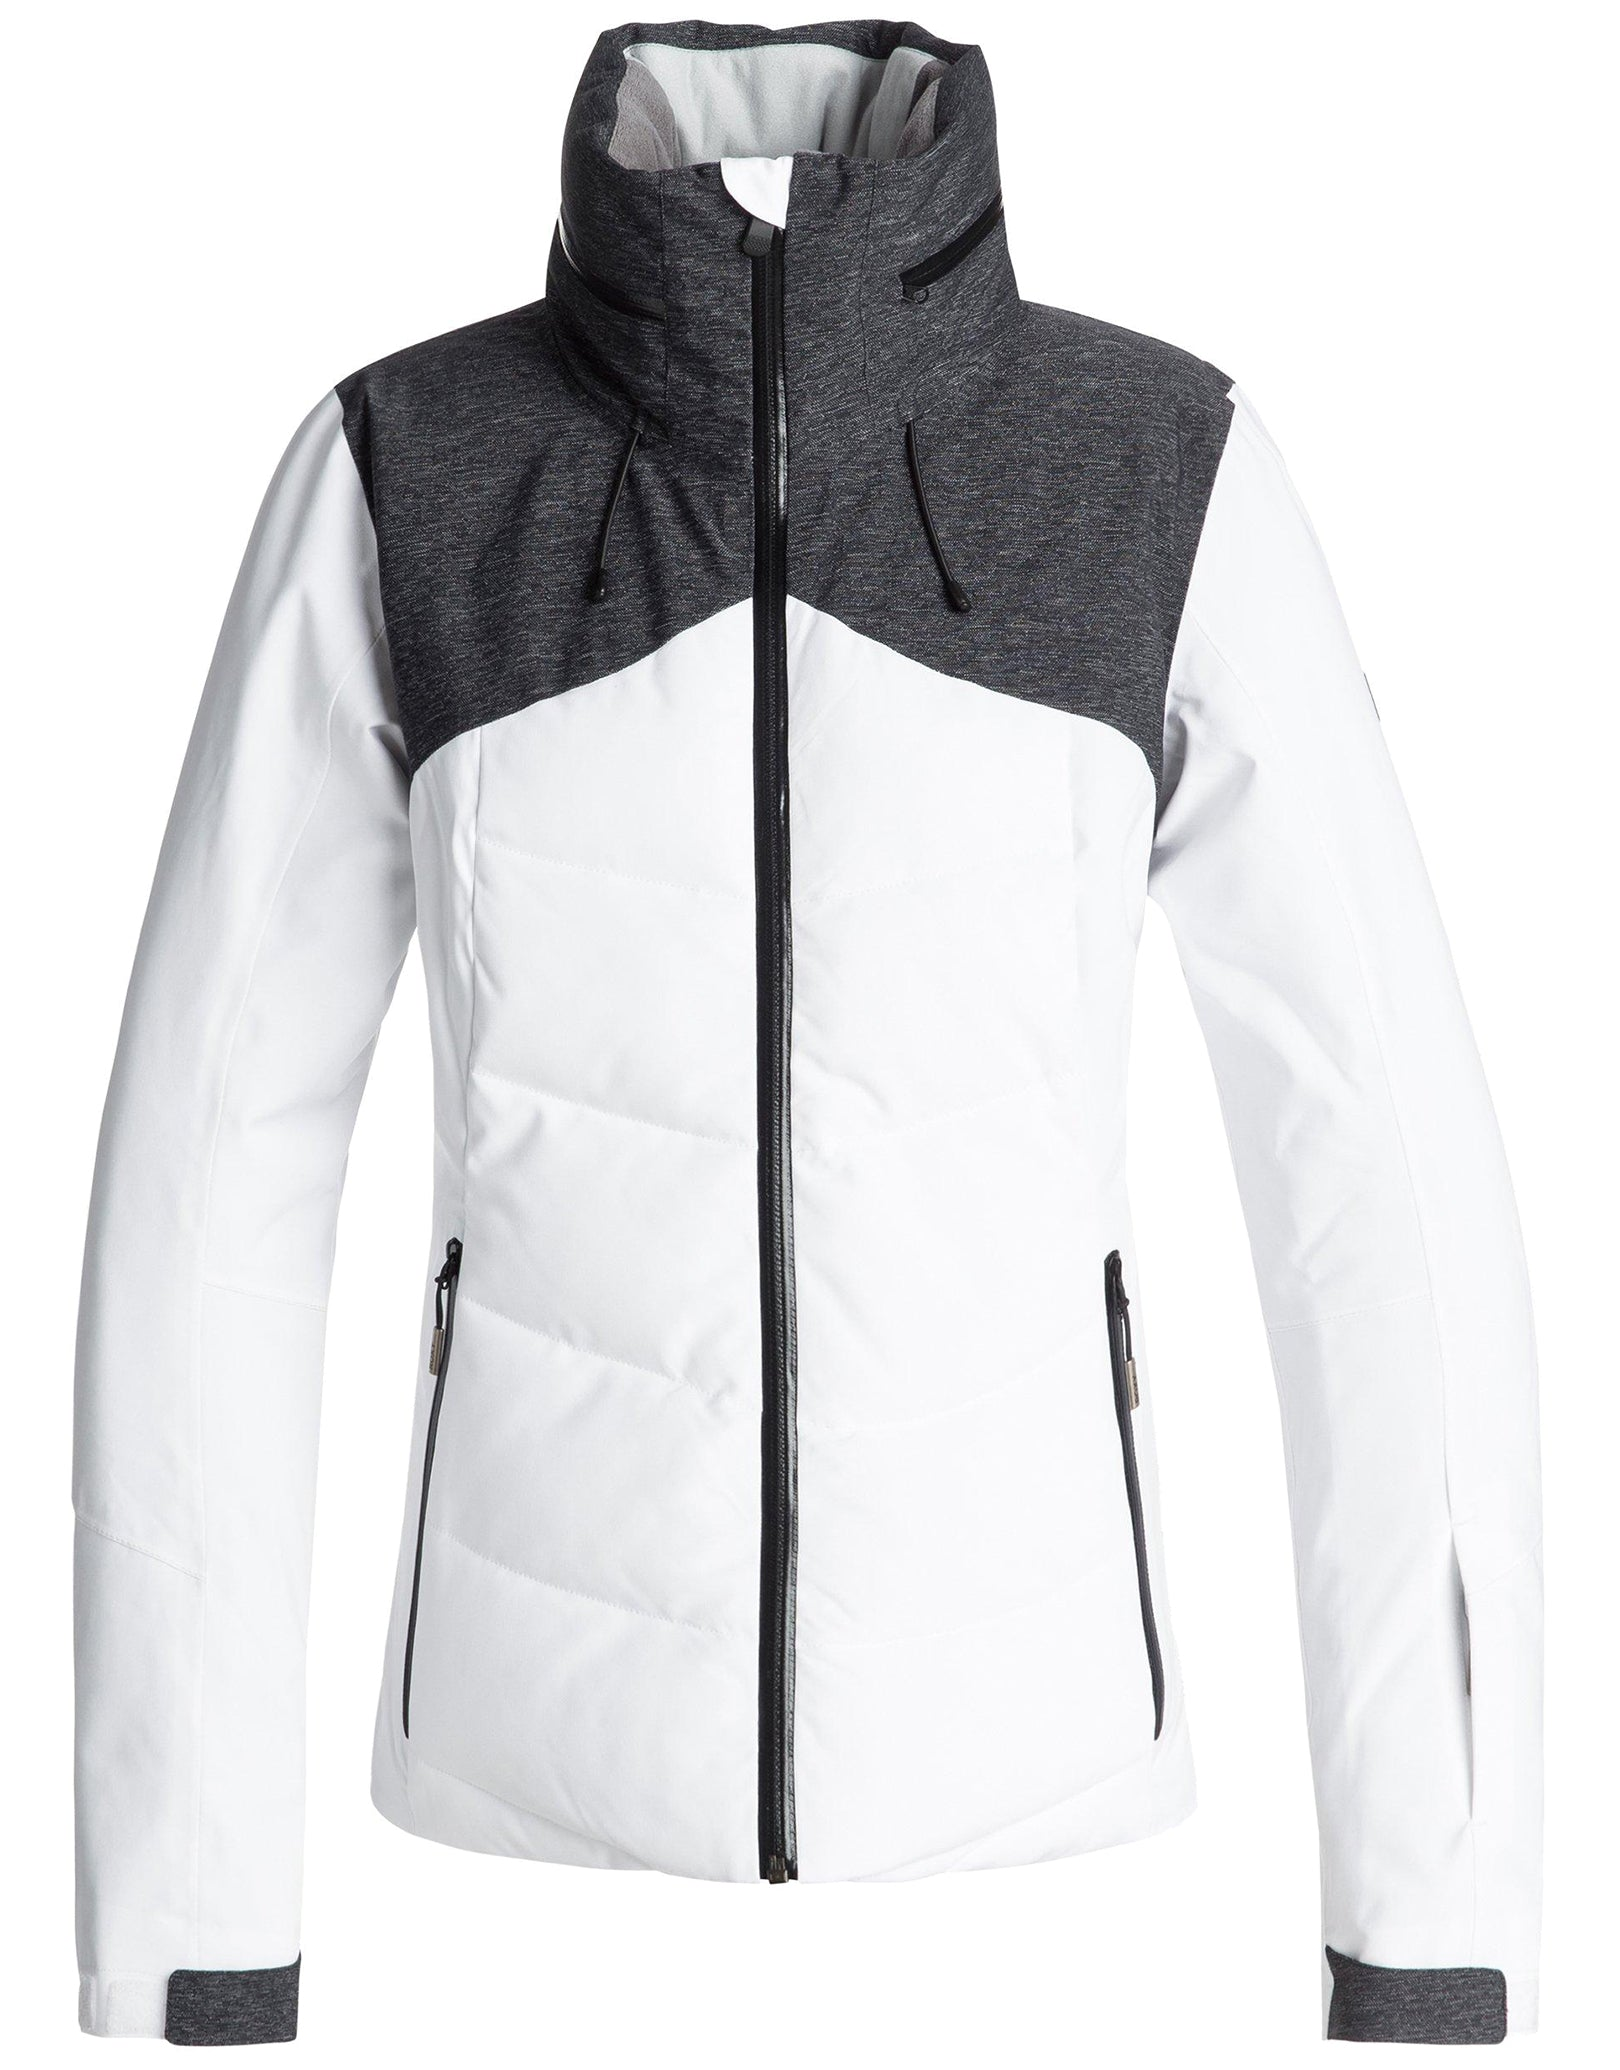 Roxy Womens Flicker Ski Jacket - Bright White  34e7a6990